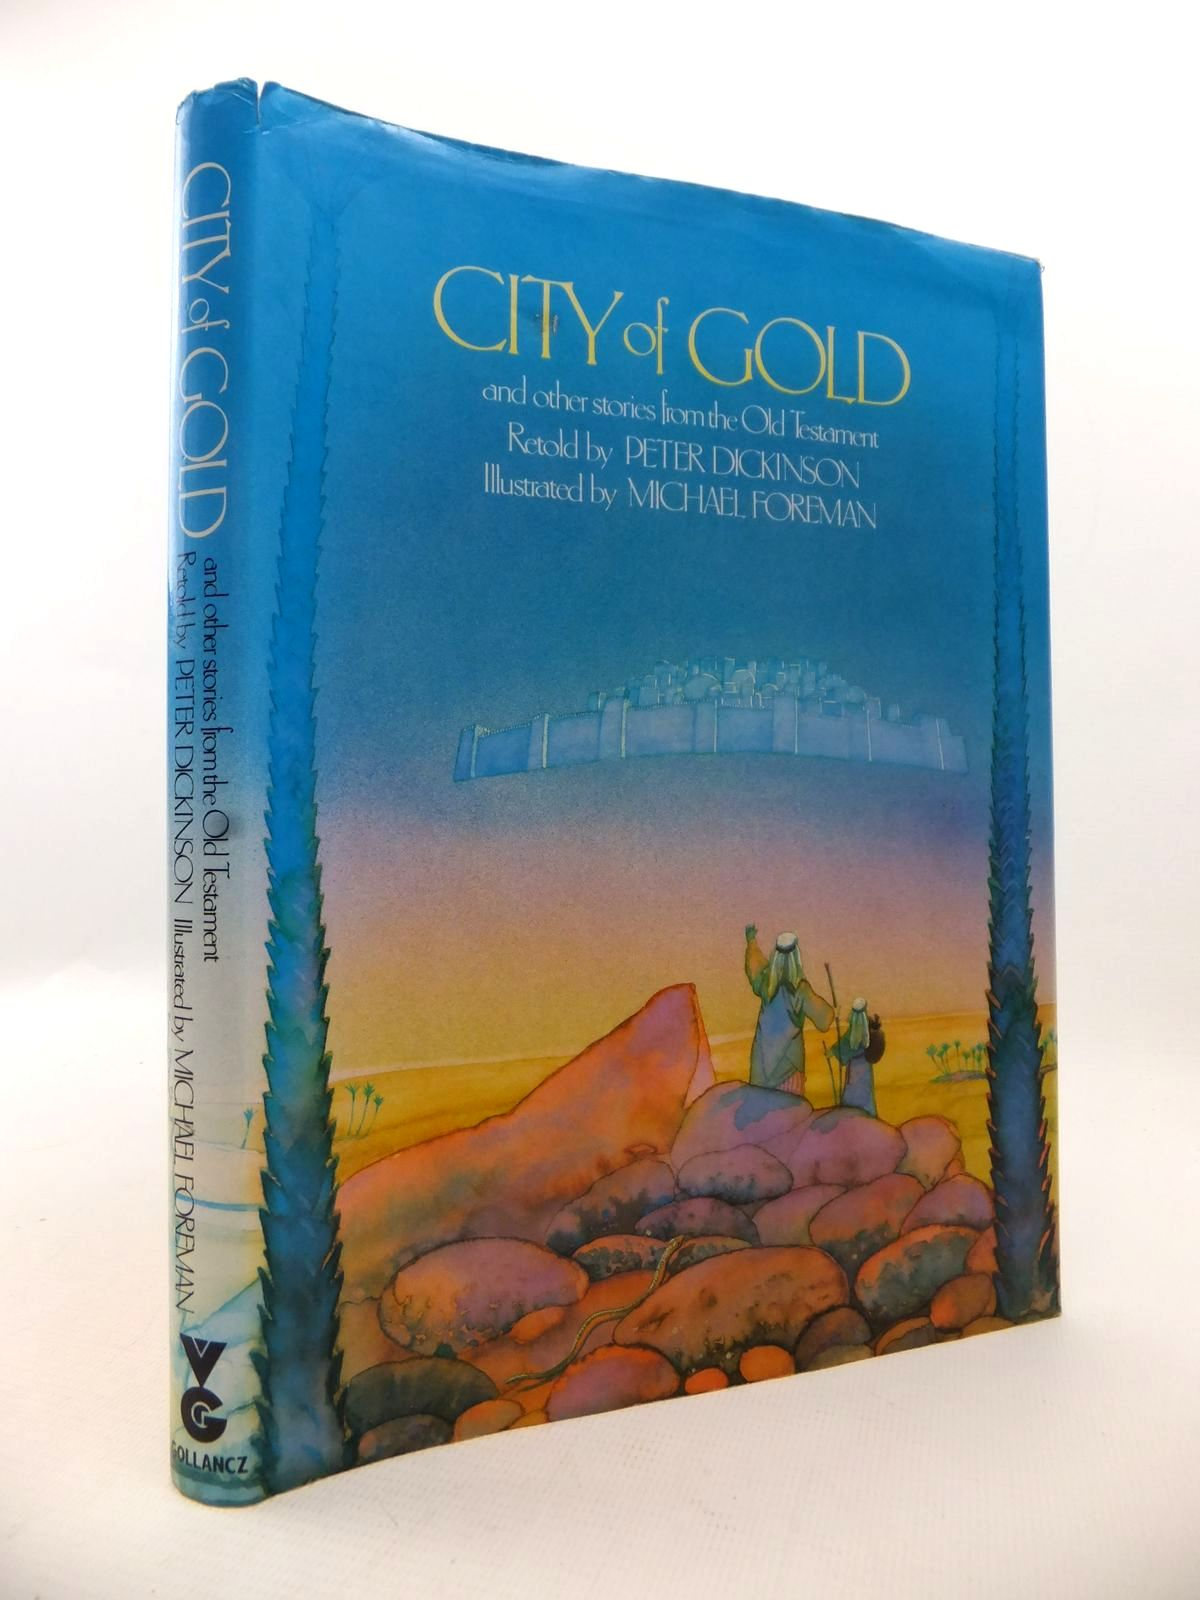 Photo of CITY OF GOLD AND OTHER STORIES FROM THE OLD TESTAMENT written by Dickinson, Peter illustrated by Foreman, Michael published by Victor Gollancz Ltd. (STOCK CODE: 1813291)  for sale by Stella & Rose's Books